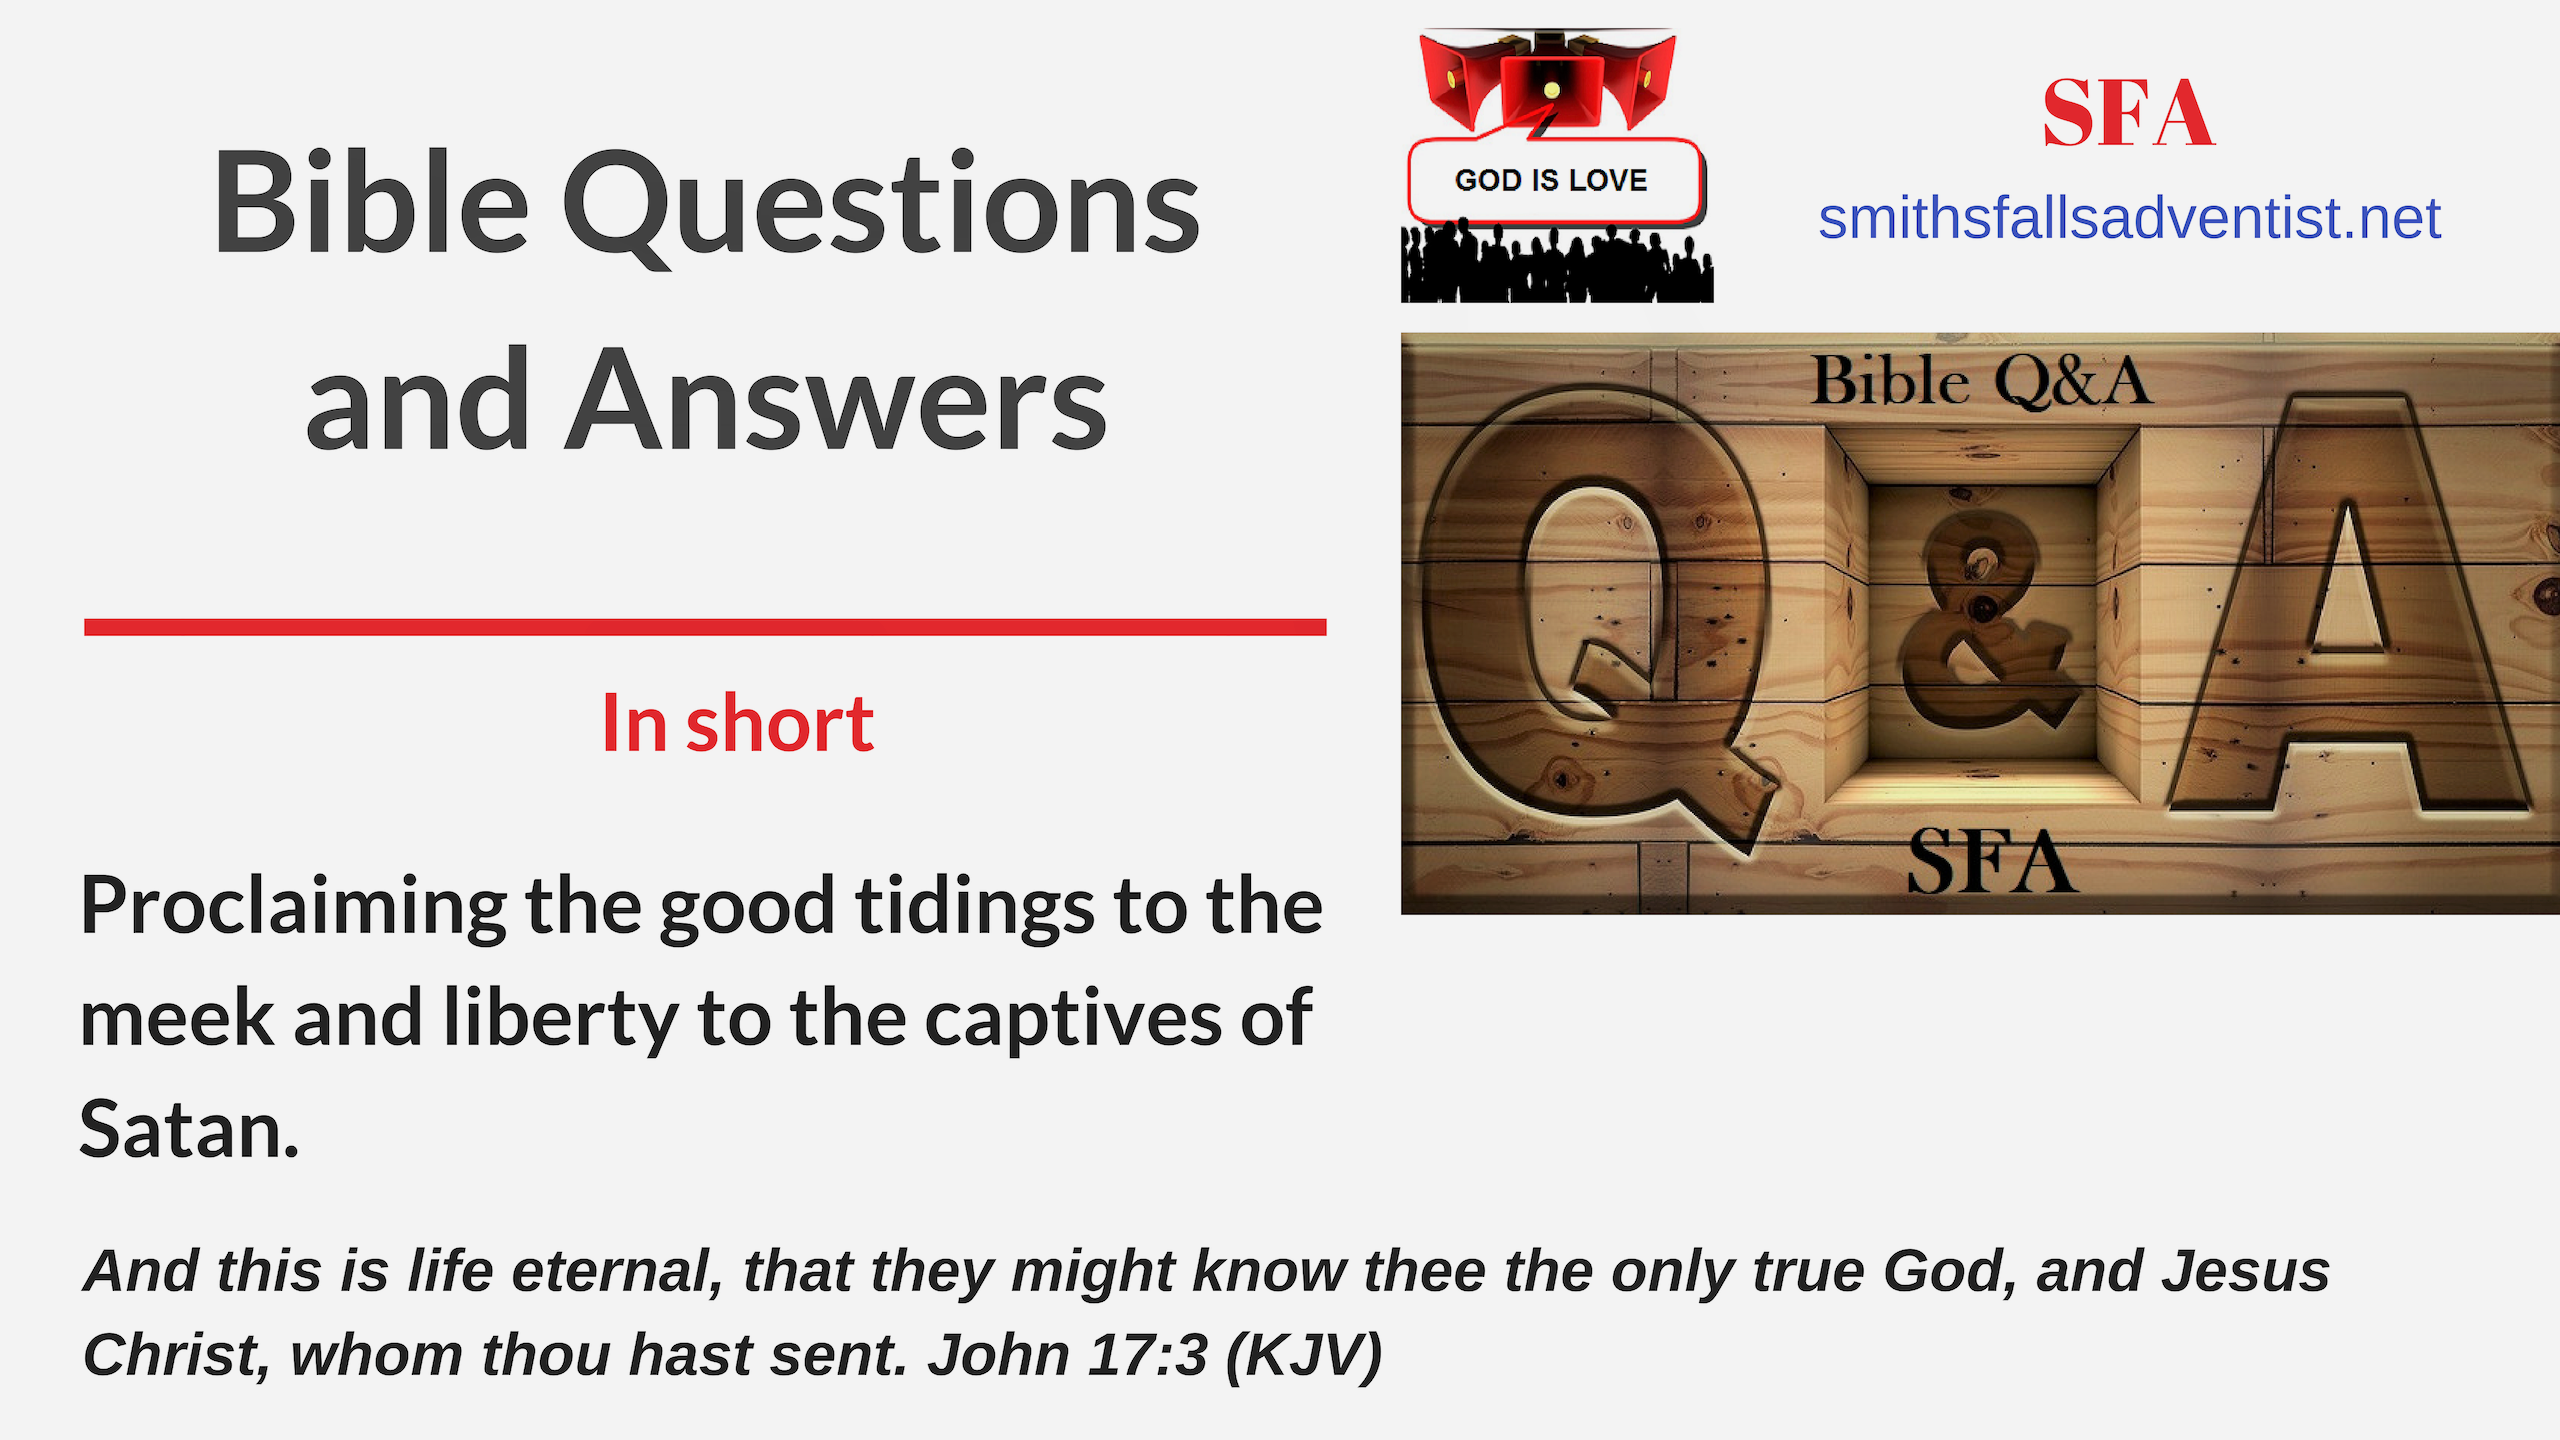 Title-Bible-Questions-and-Answers-text-logo